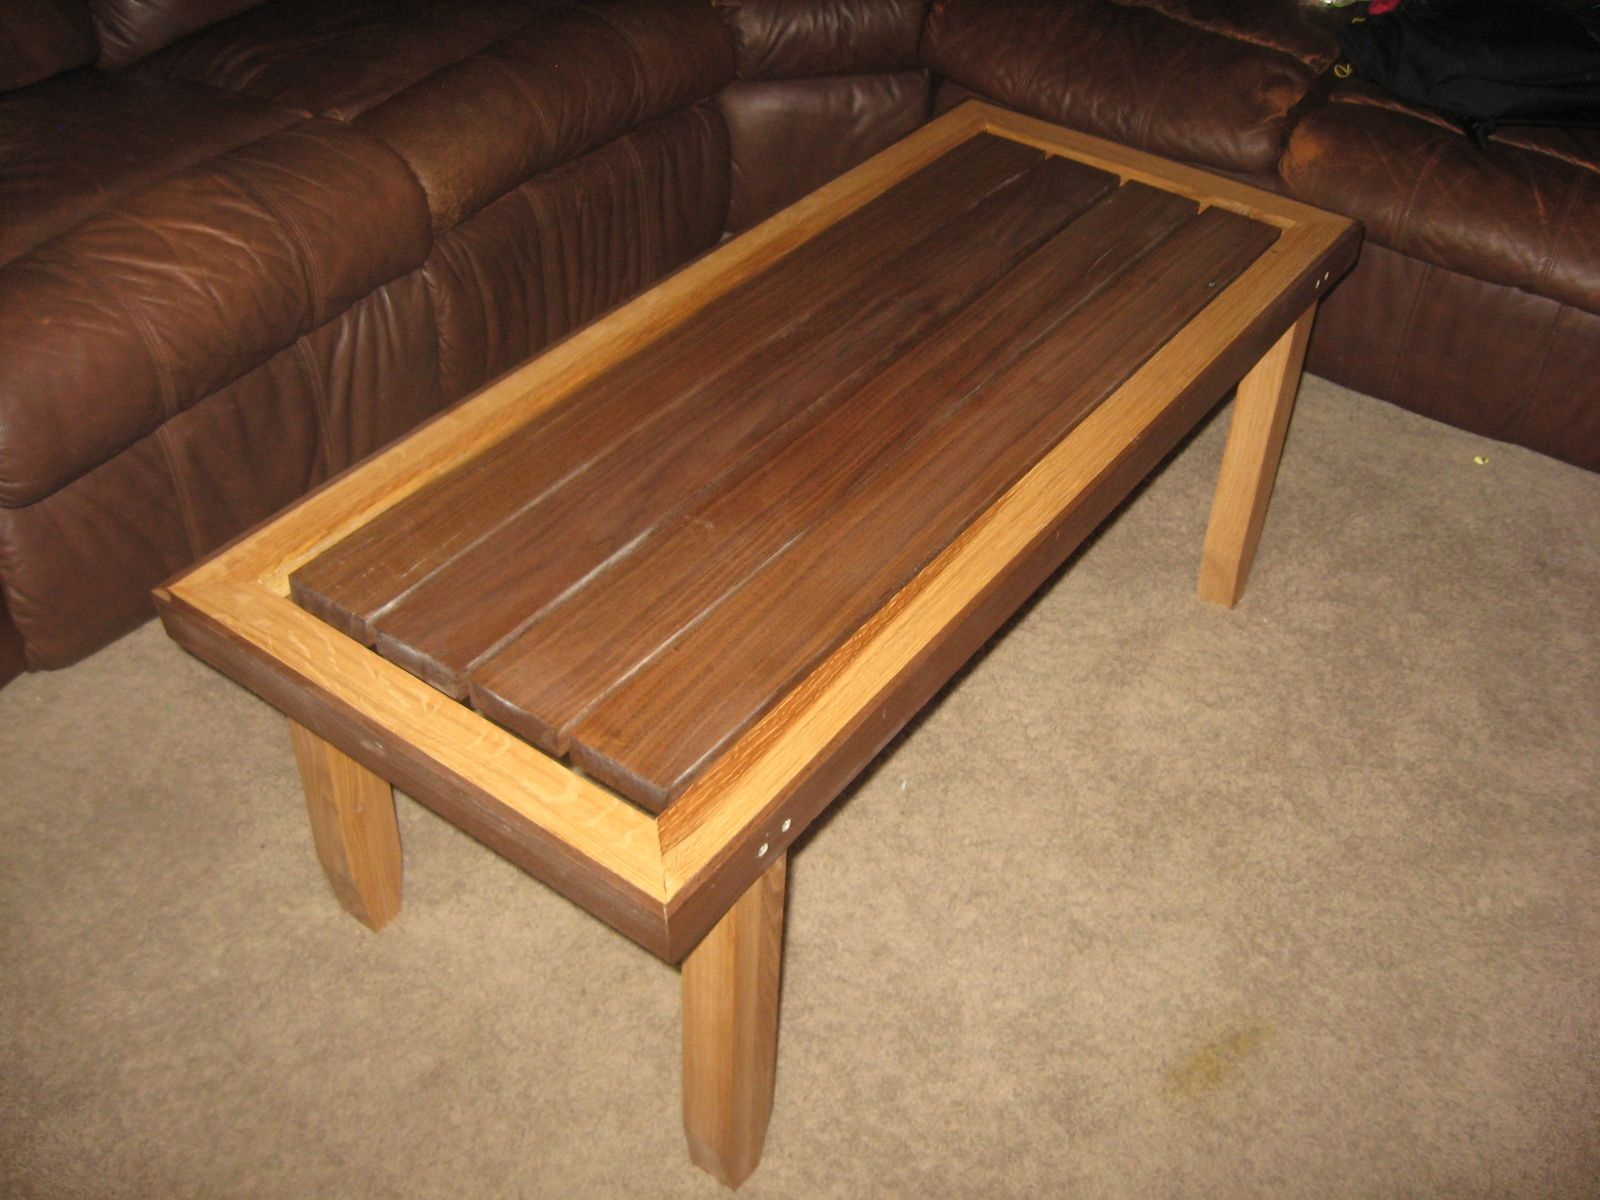 Hand Made Floating Plank Coffee Table by Wyoming Wood Chucker